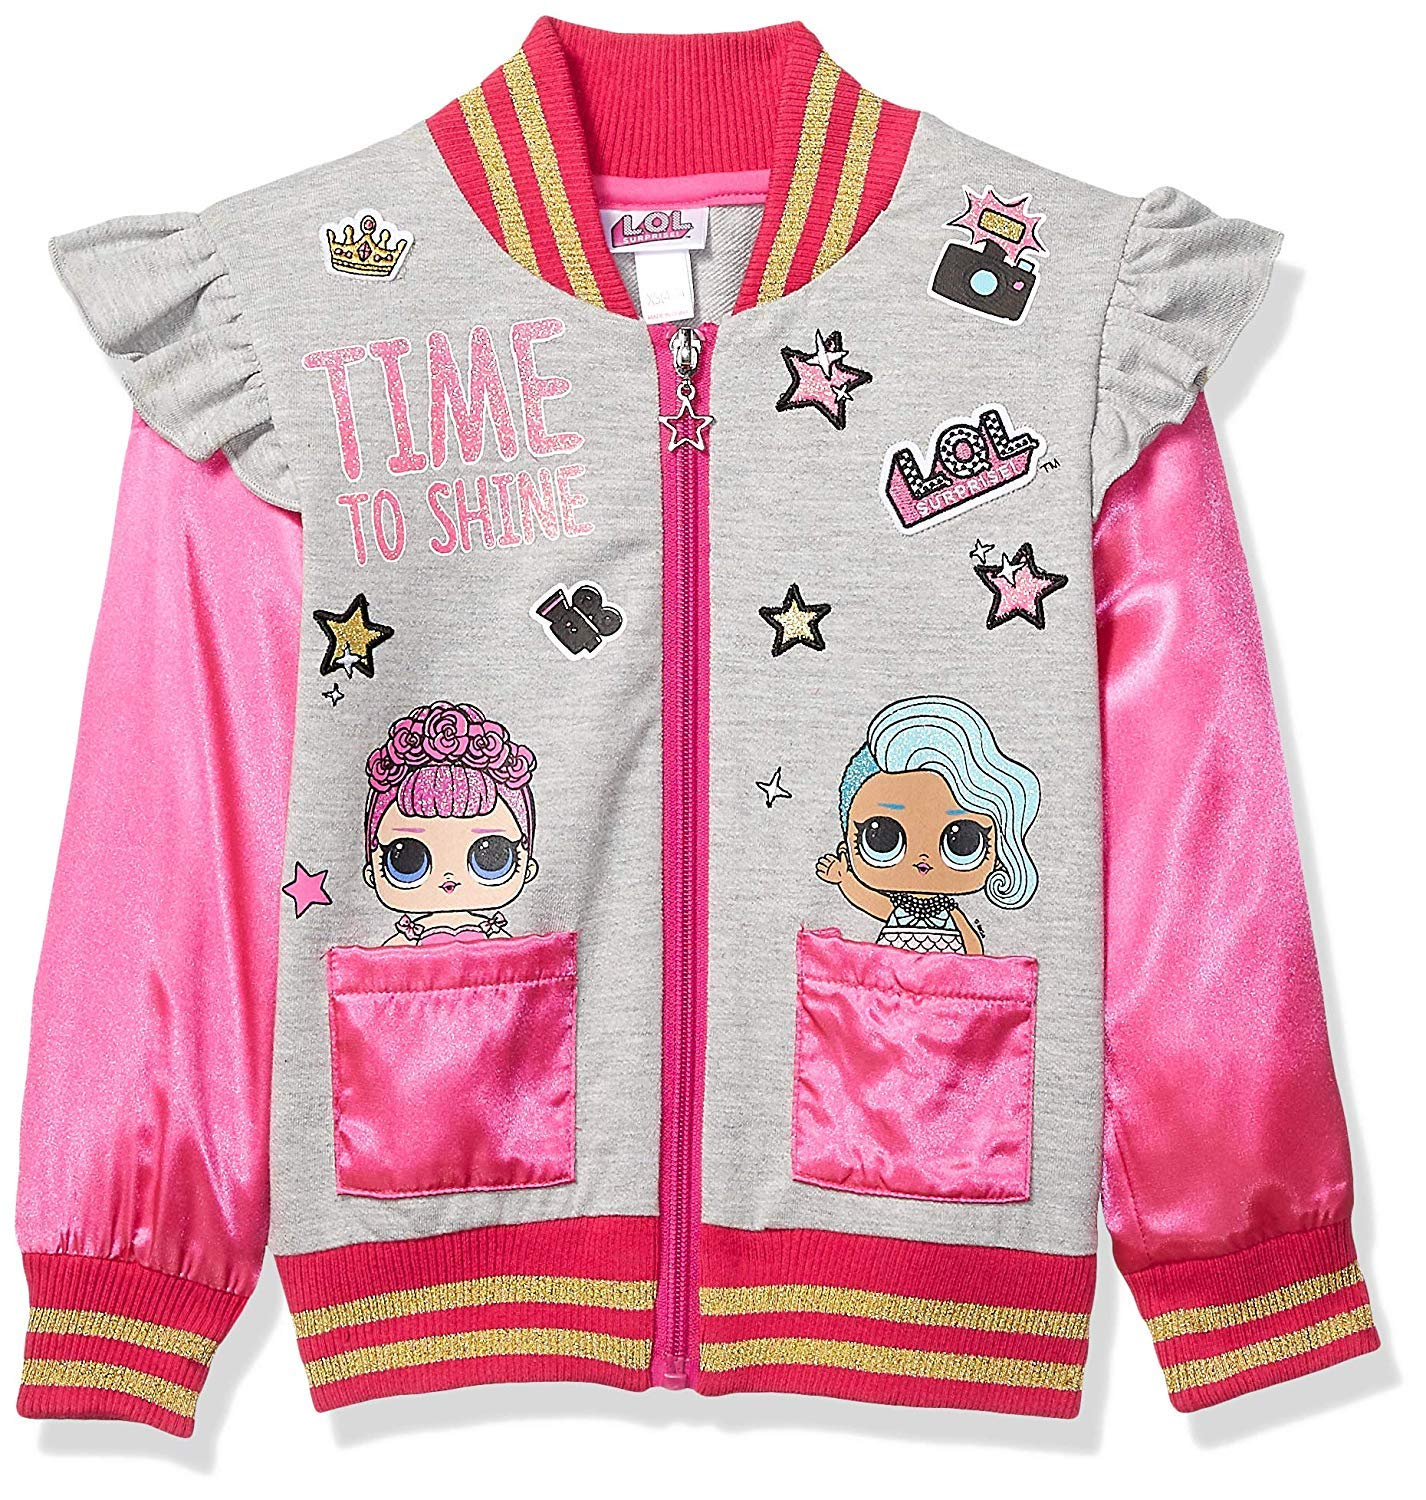 L.O.L. Surprise! Girls' Little LOL TIME to Shine Bomber Jacket, Multi, S (6/6X)